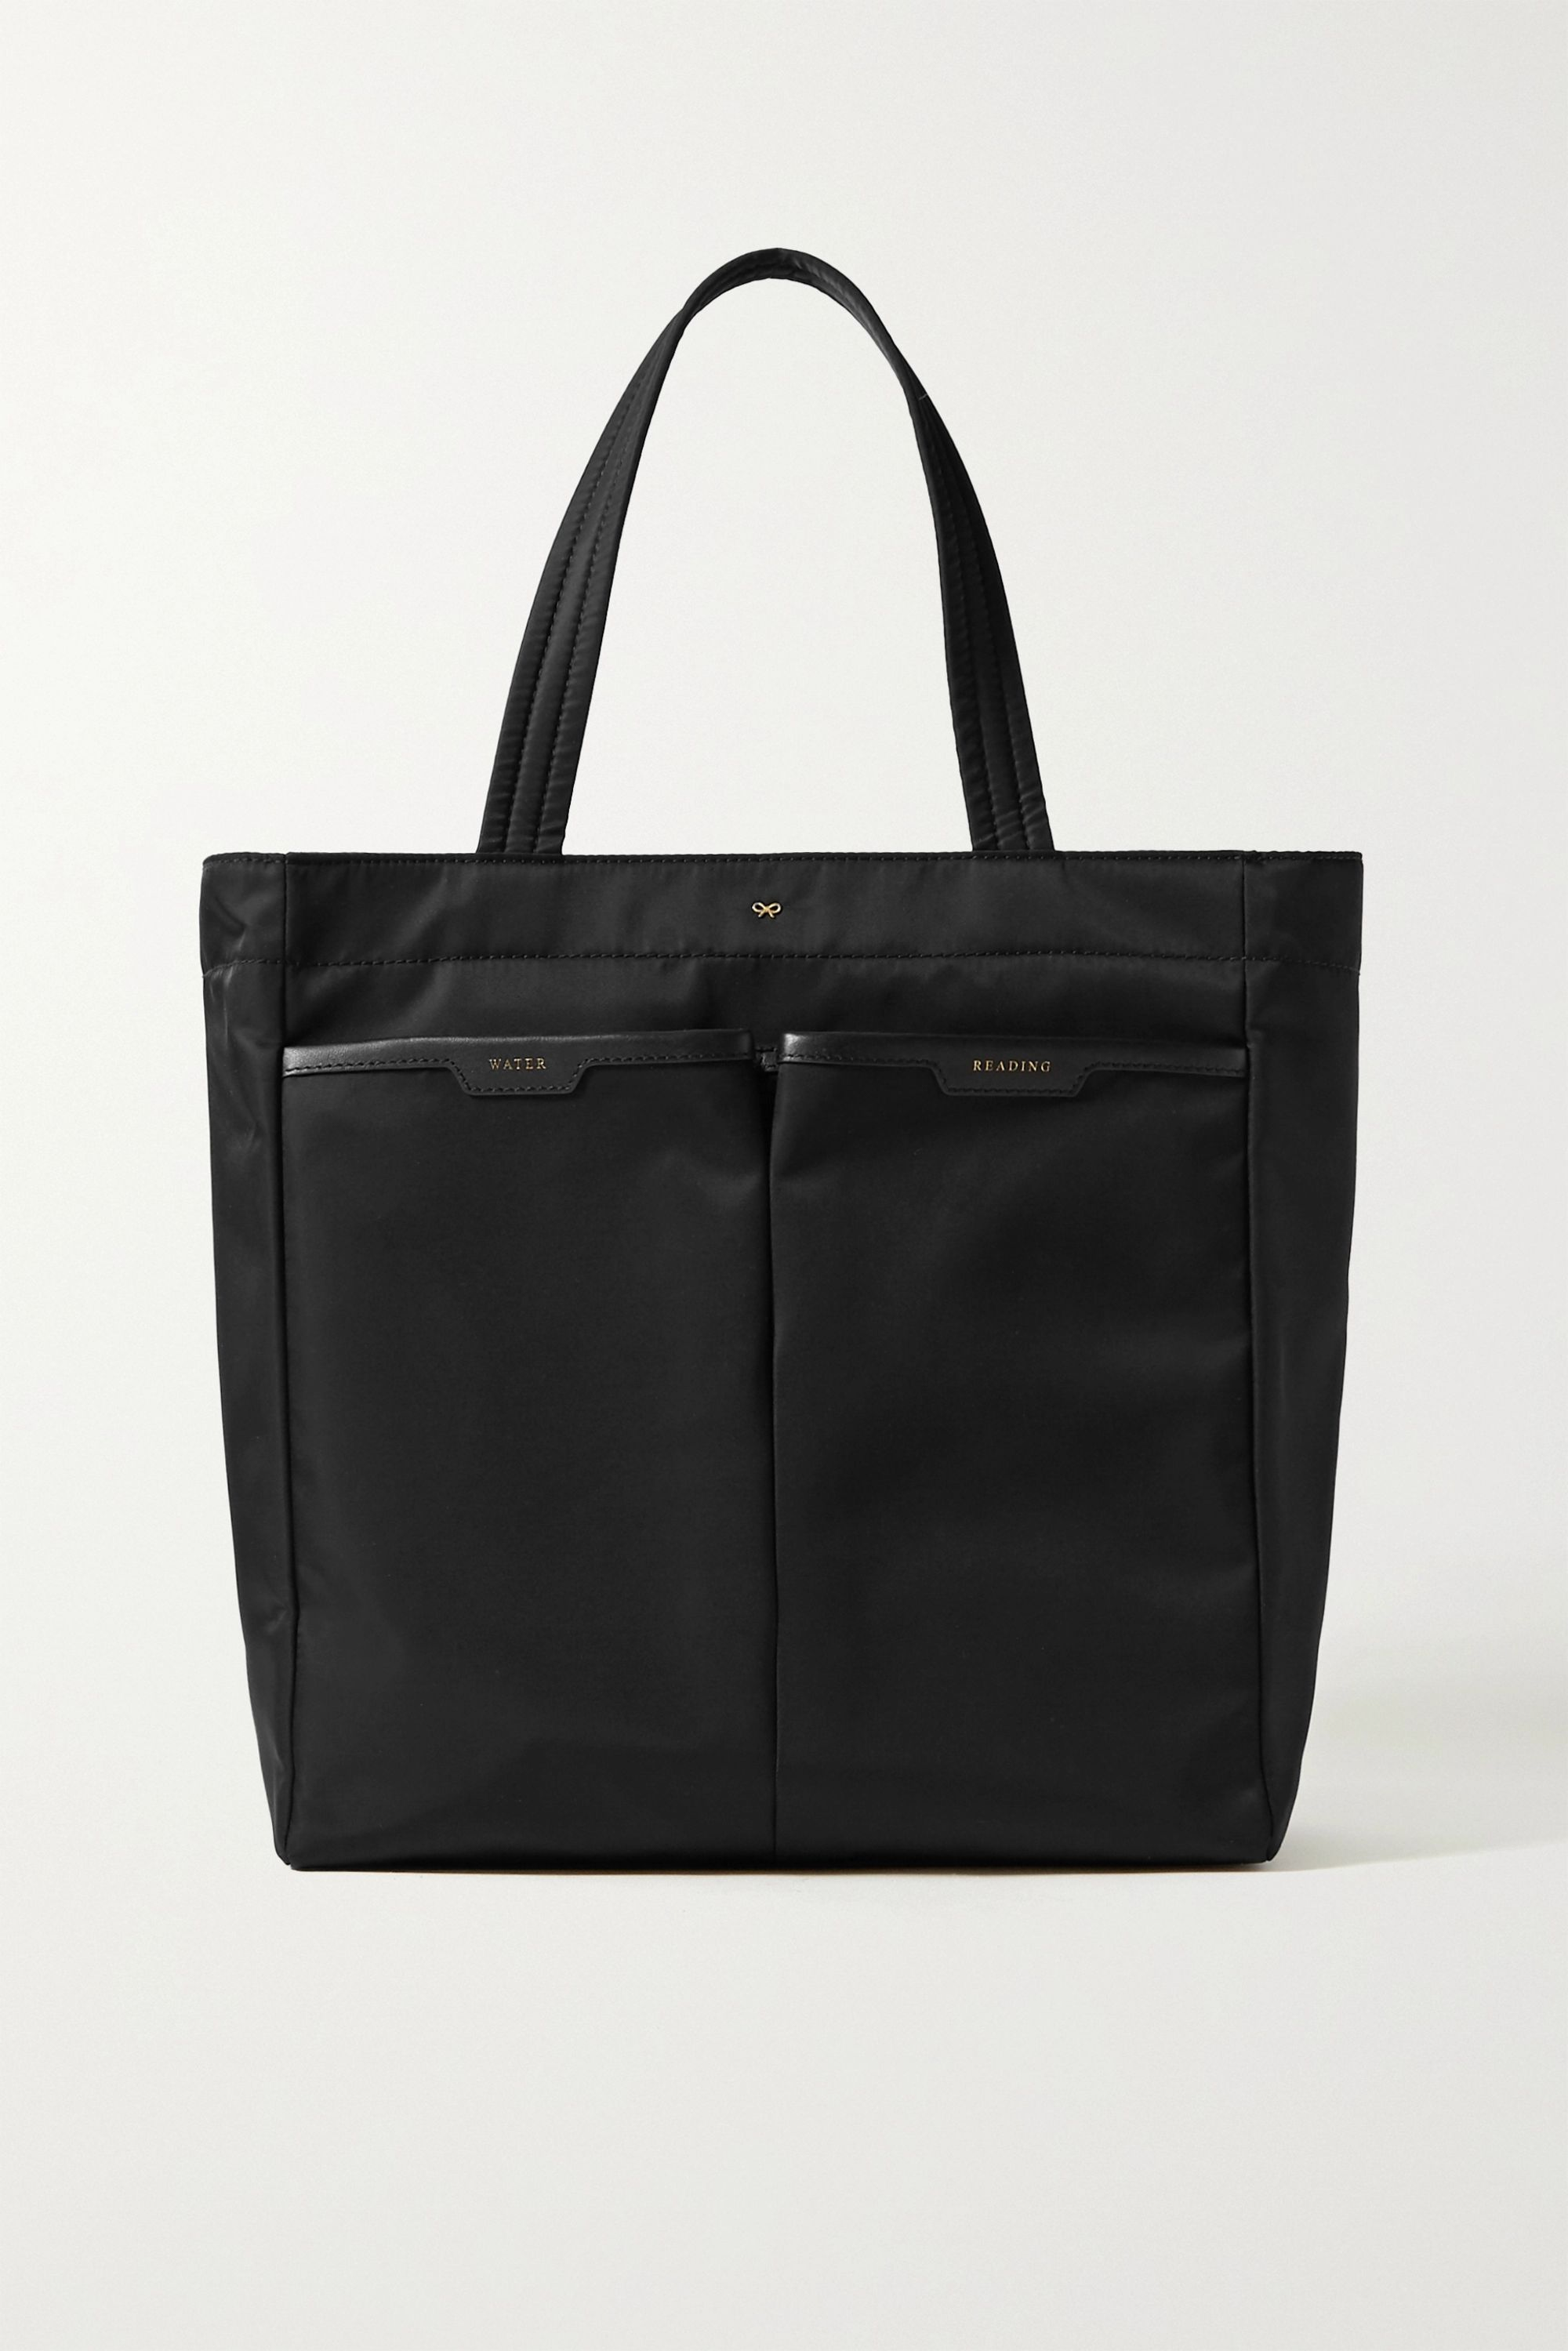 Anya Hindmarch Nevis leather-trimmed shell tote